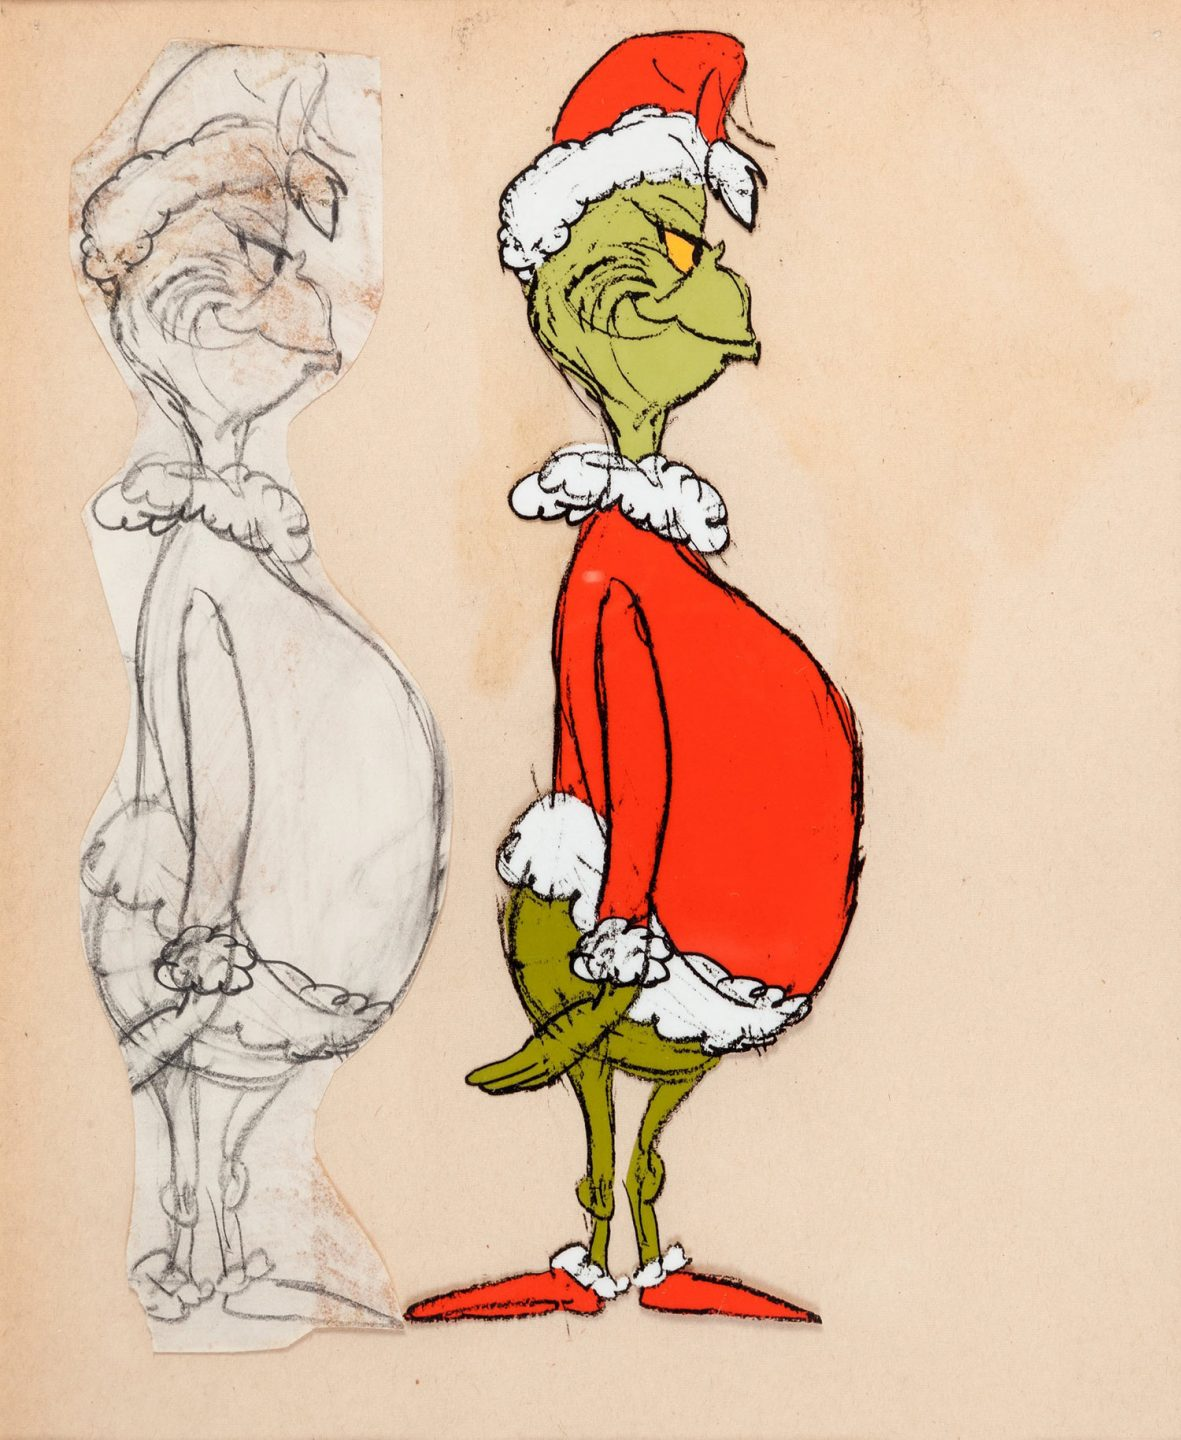 Early character design by Chuck Jones and color model cel test.